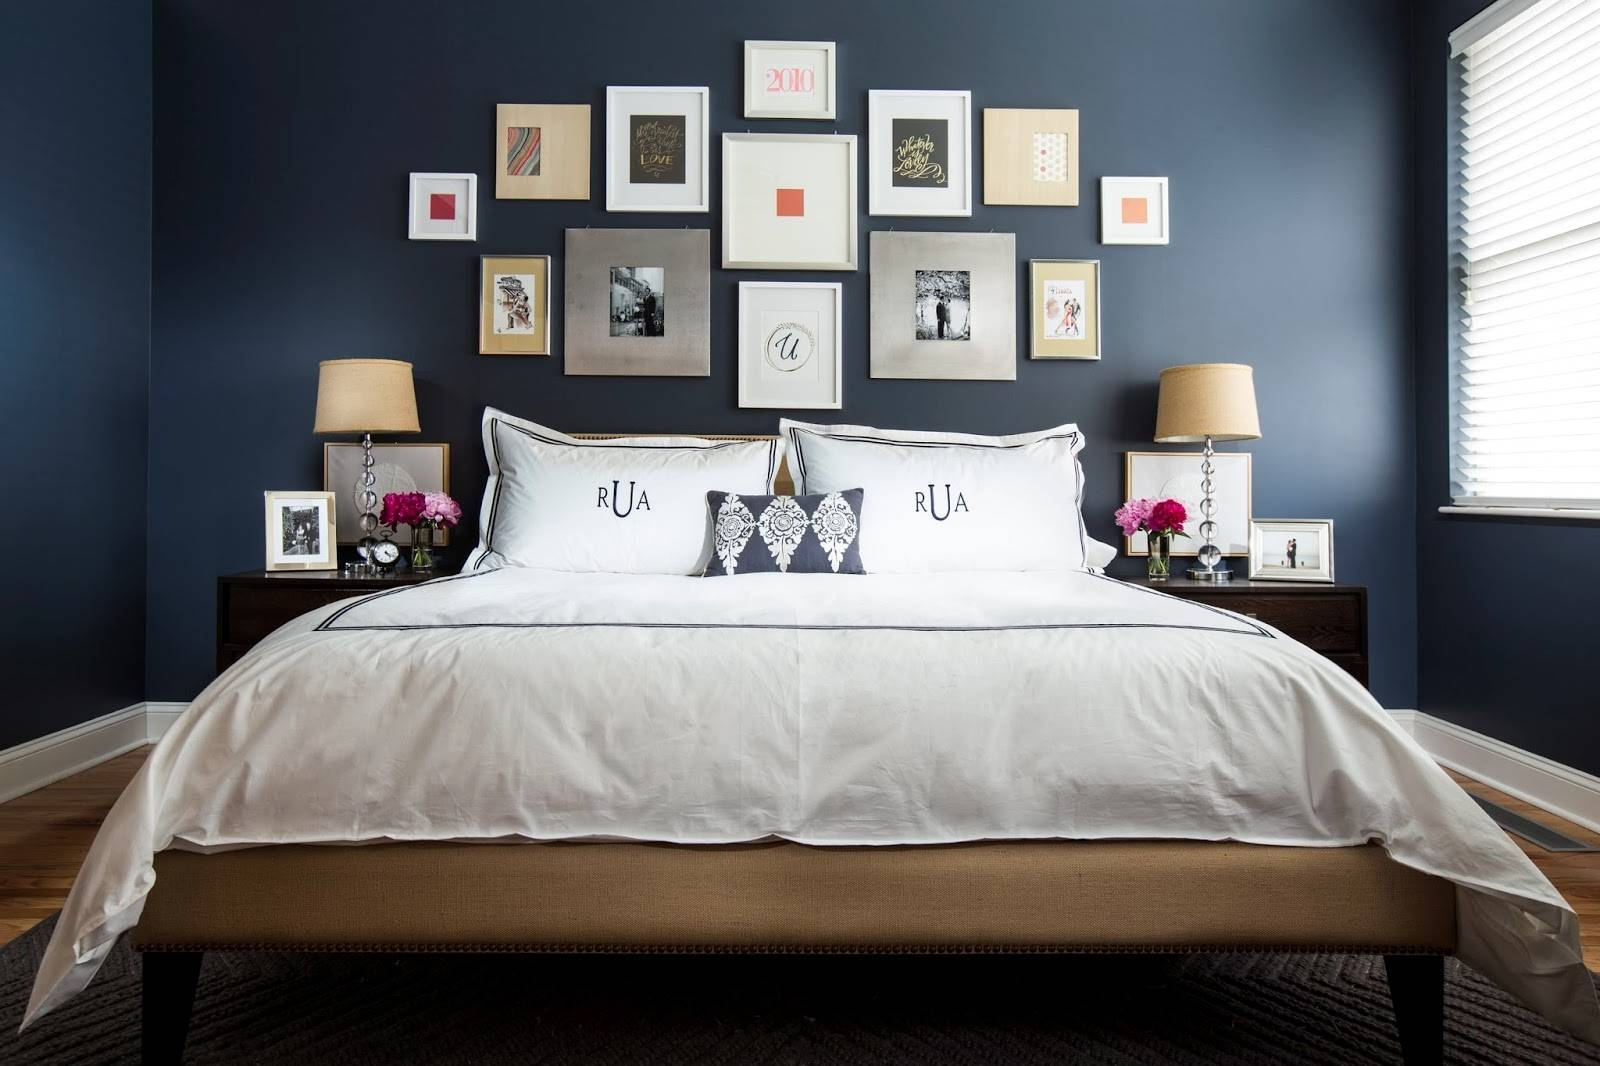 Full Of Framed Awesome Bedroom Design With Wall Art Over Bed Feat With Best And Newest Bed Wall Art (View 15 of 25)